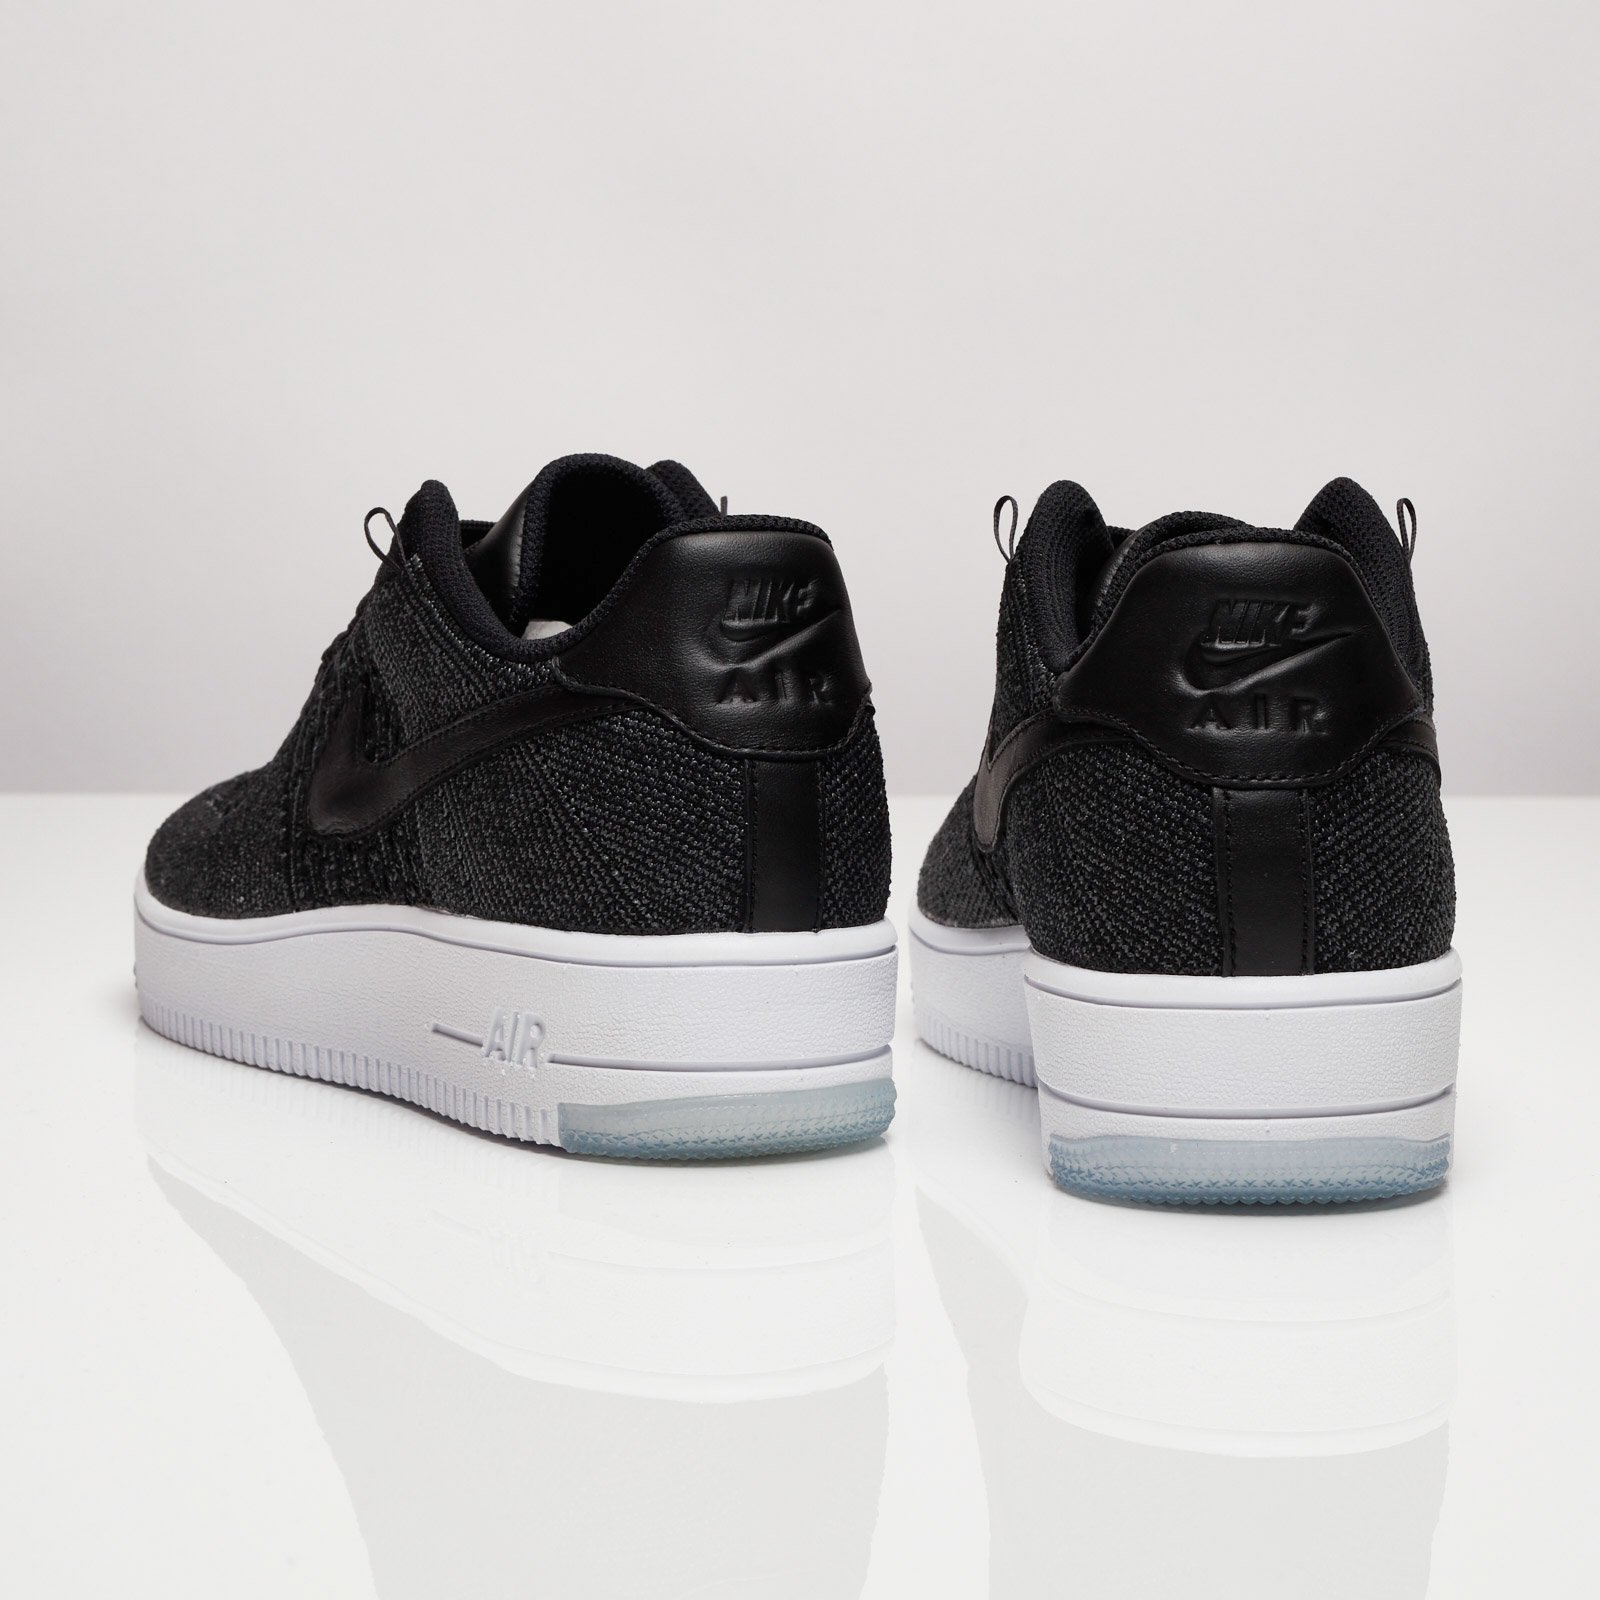 factory authentic 15ecc a0712 Nike AF1 Ultra Flyknit Low Nike AF1 Ultra Flyknit Low ...